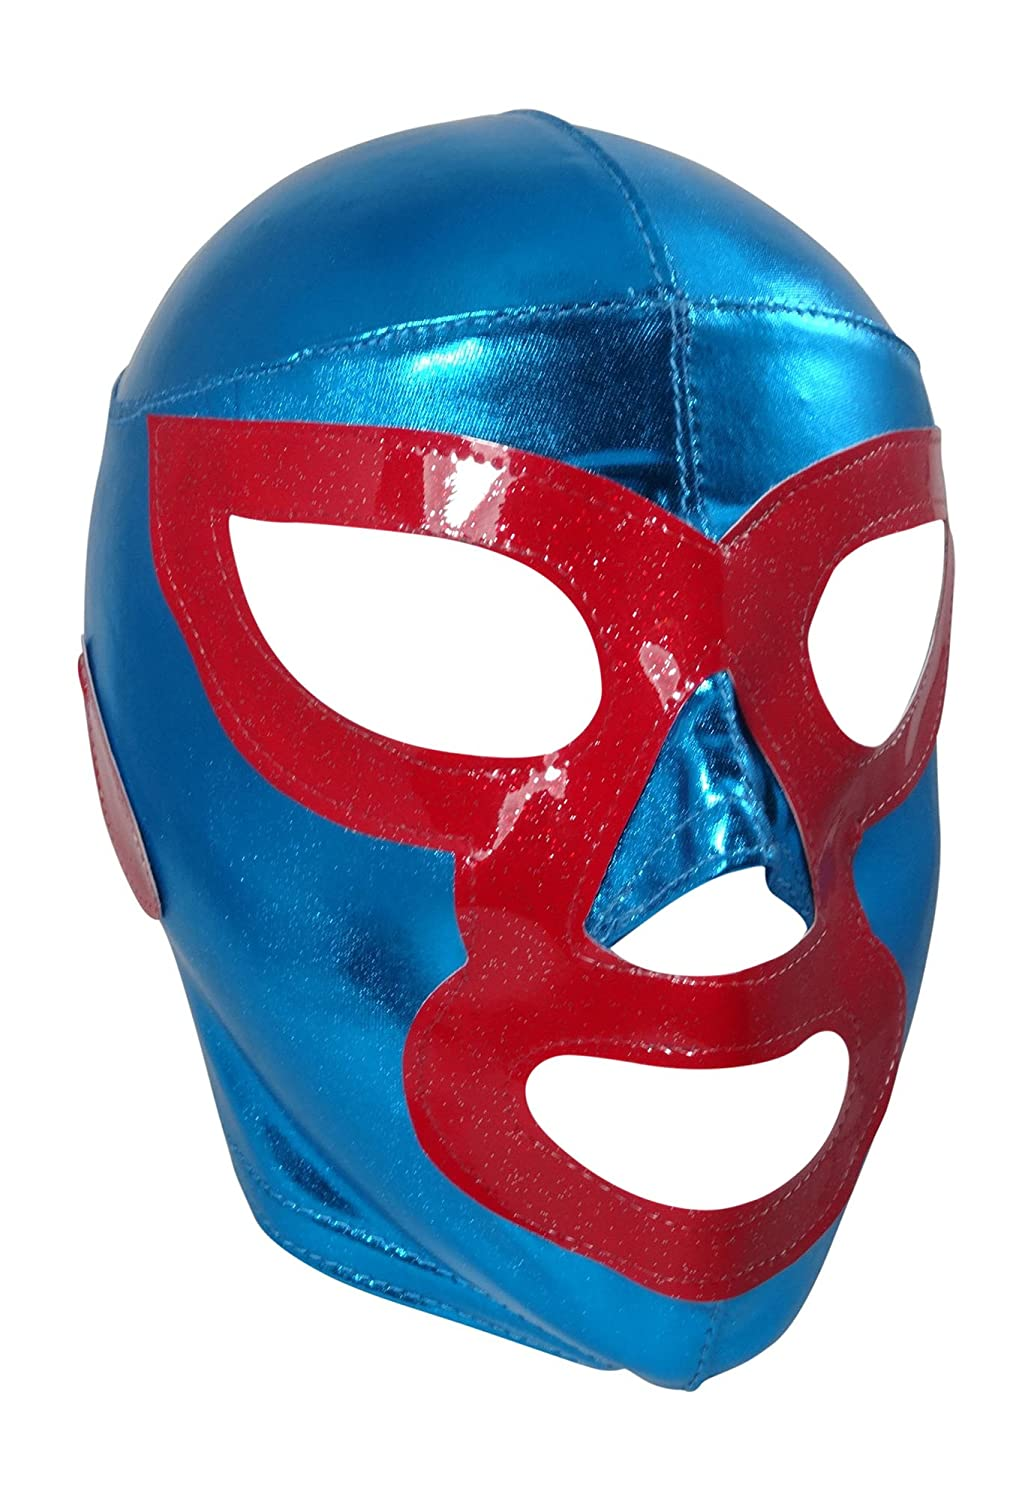 NACHO LIBRE LYCRA Youth Lucha Libre Wrestling Mask - KIDS Costume Wear Mask Maniac